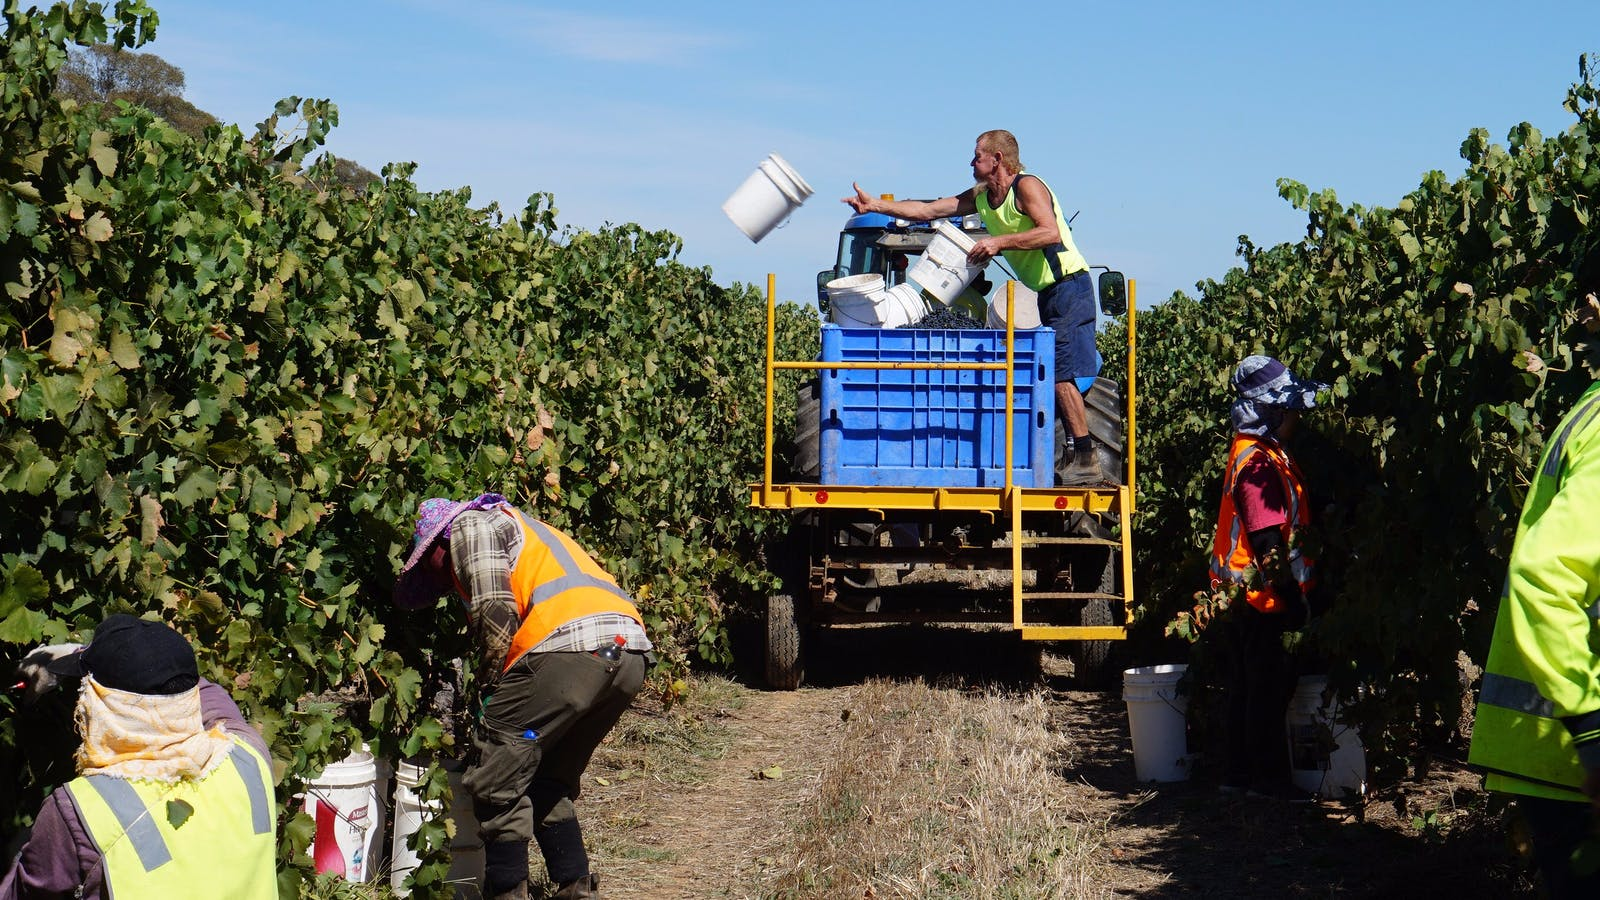 Hand picking grapes